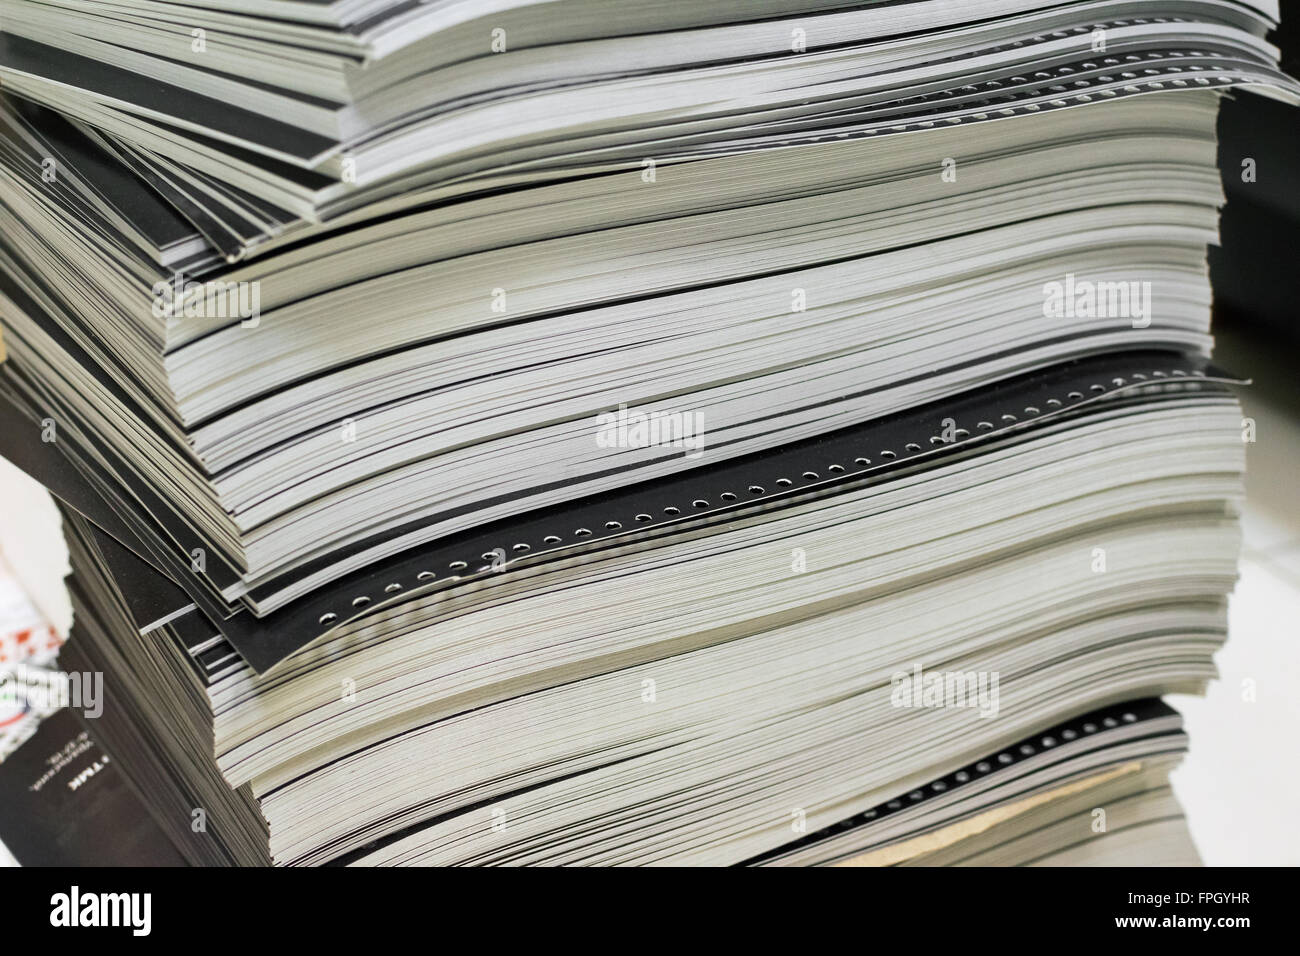 stack of black perforated printed sheets - Stock Image